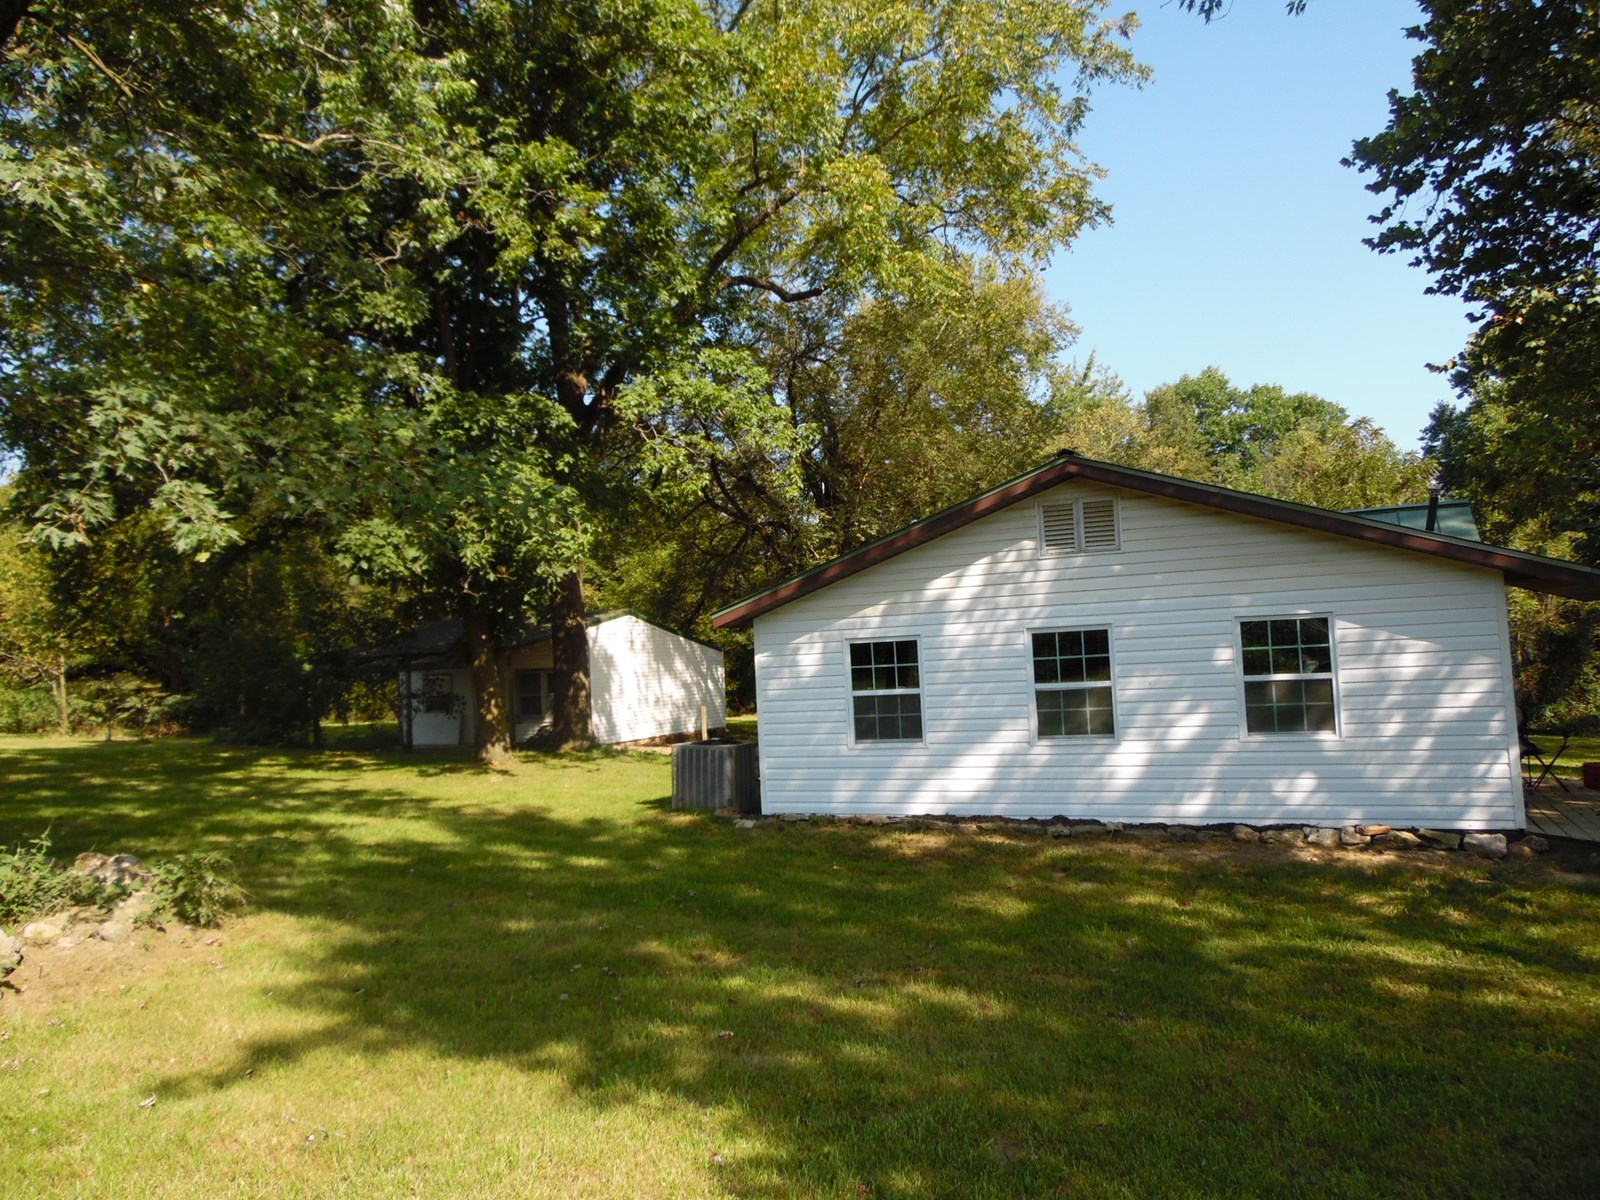 Home for Sale in Southern Missouri on Austin Lake